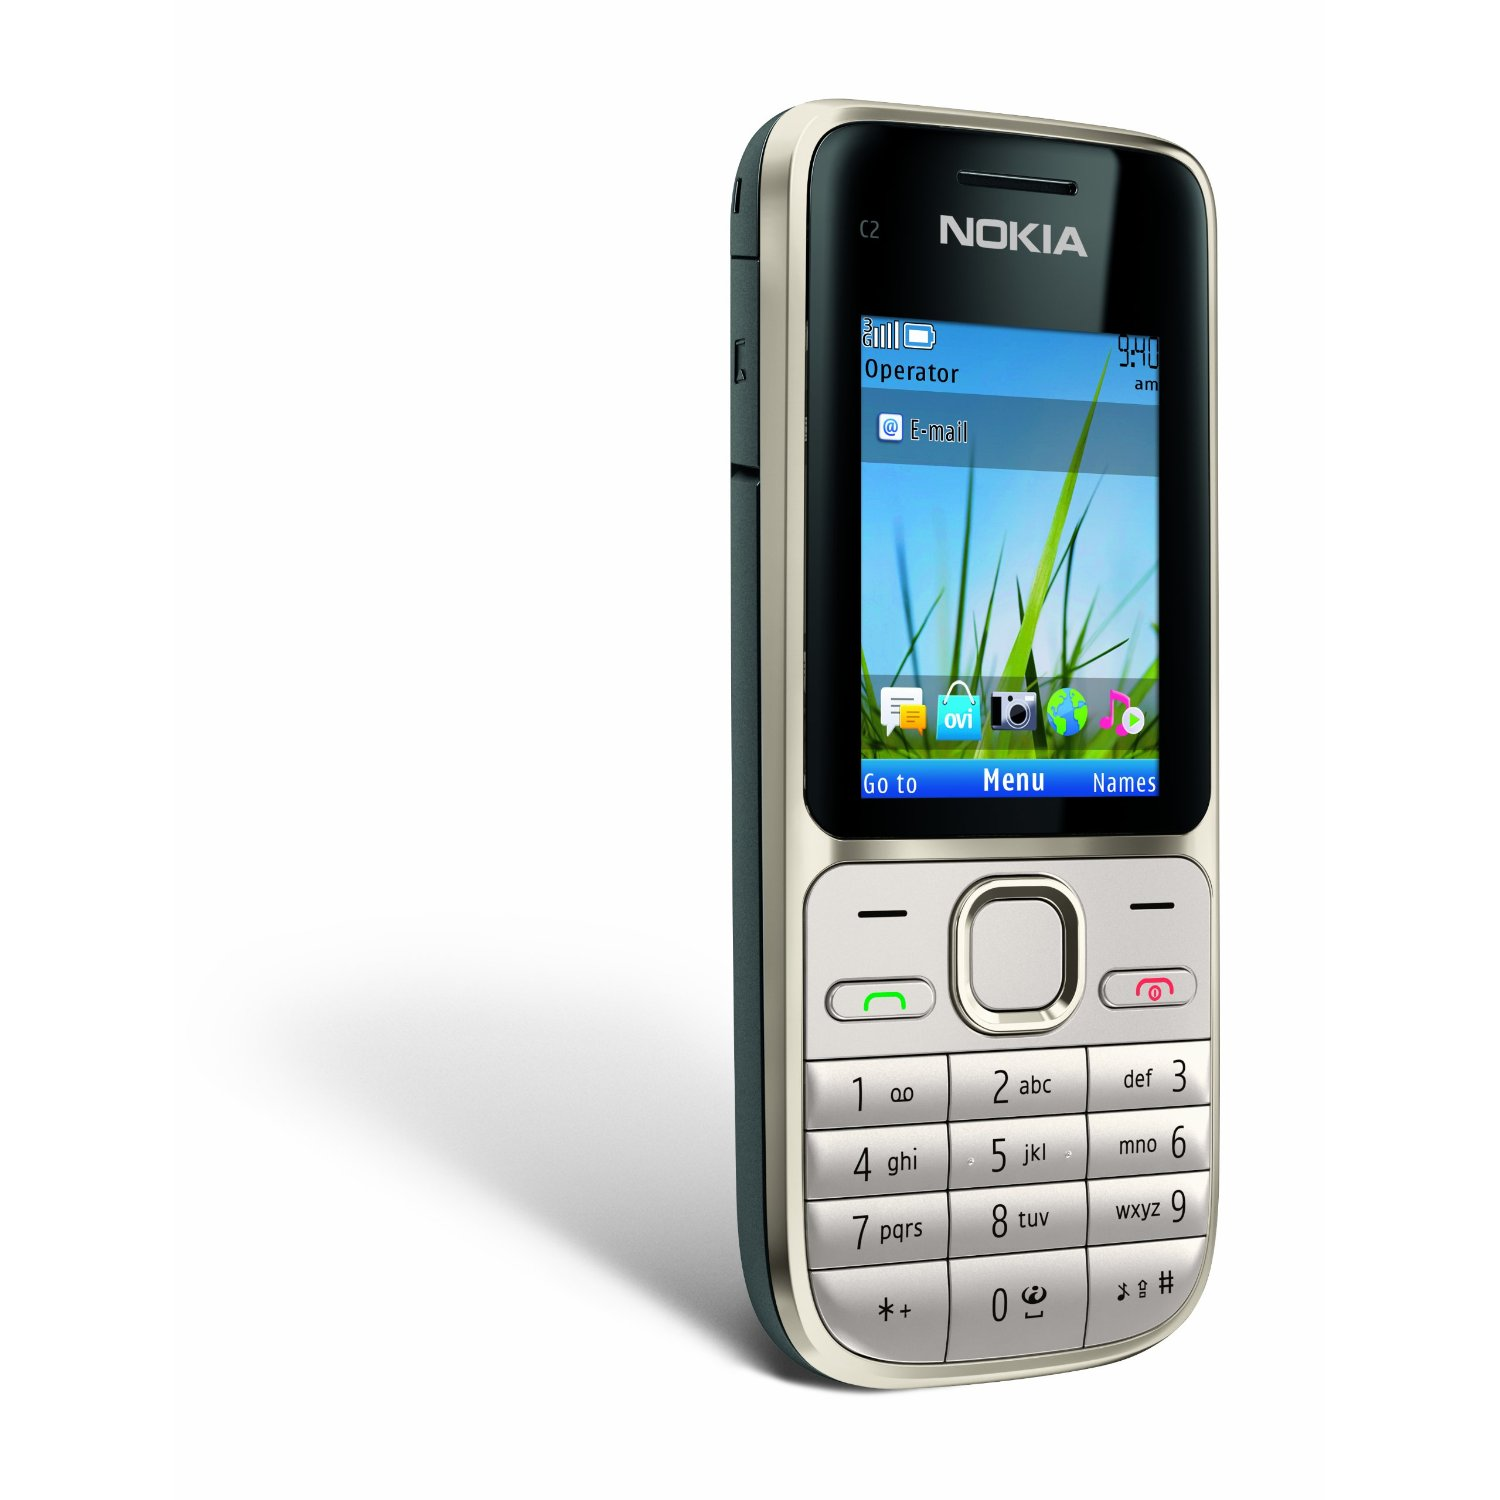 Nokia C2-01.5 Unlocked GSM Phone with 3.2 MP Camera and